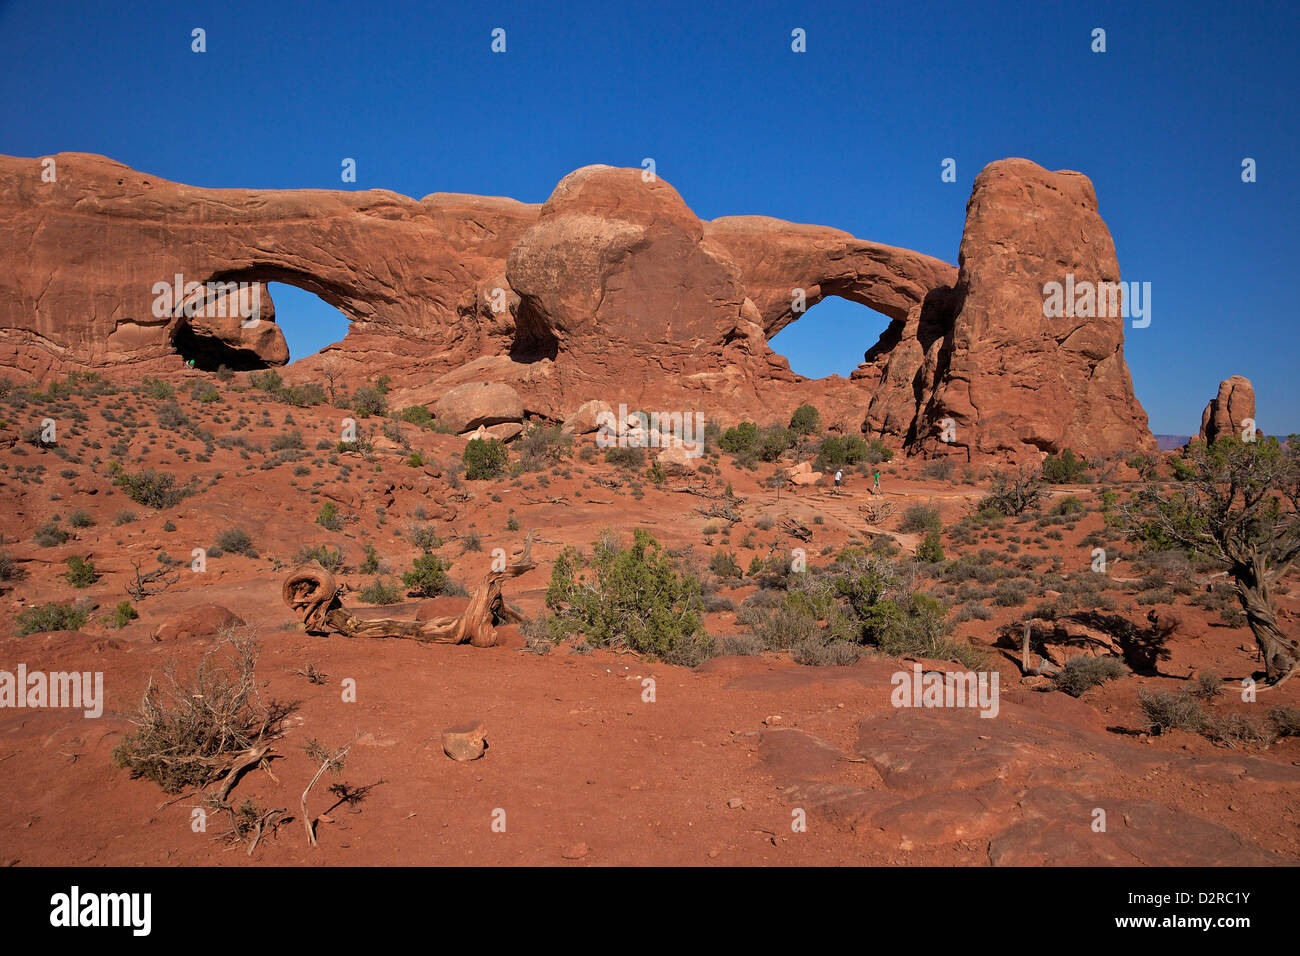 The Spectacles (North and South Windows), Arches National Park, Moab, Utah, United States of America, North America - Stock Image